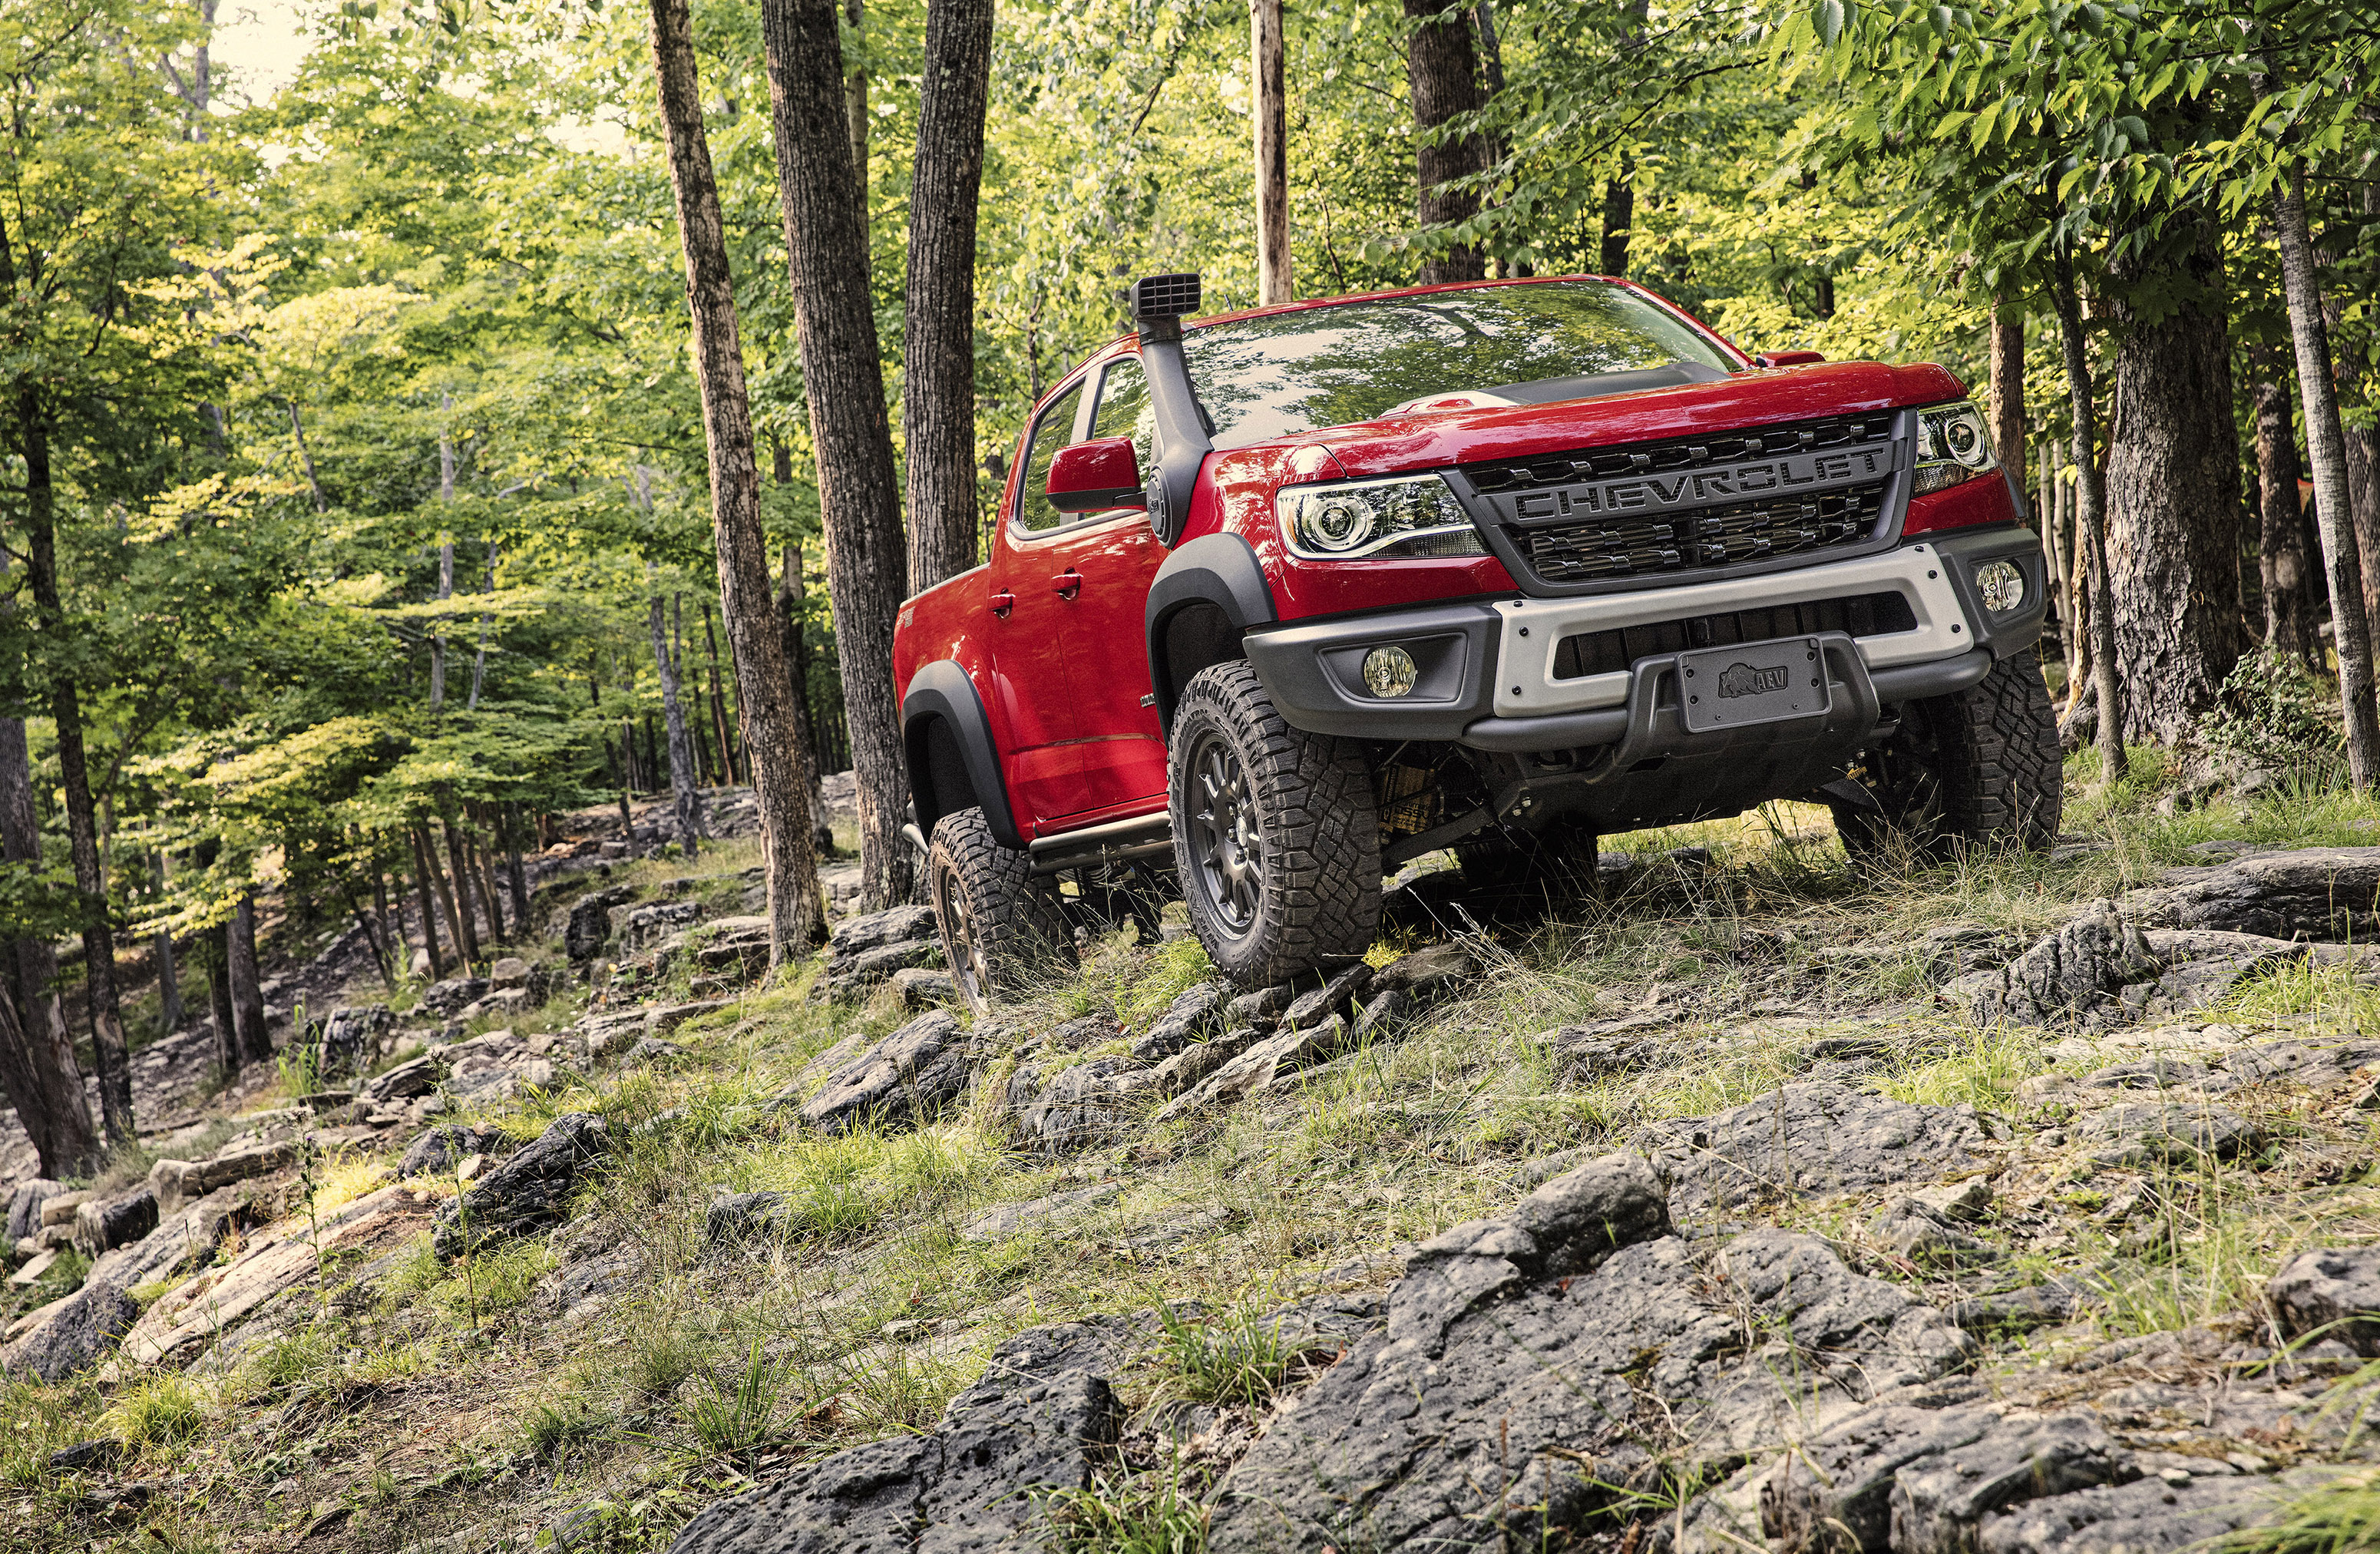 Chevy's New ZR2 Bison Just Changed the Game